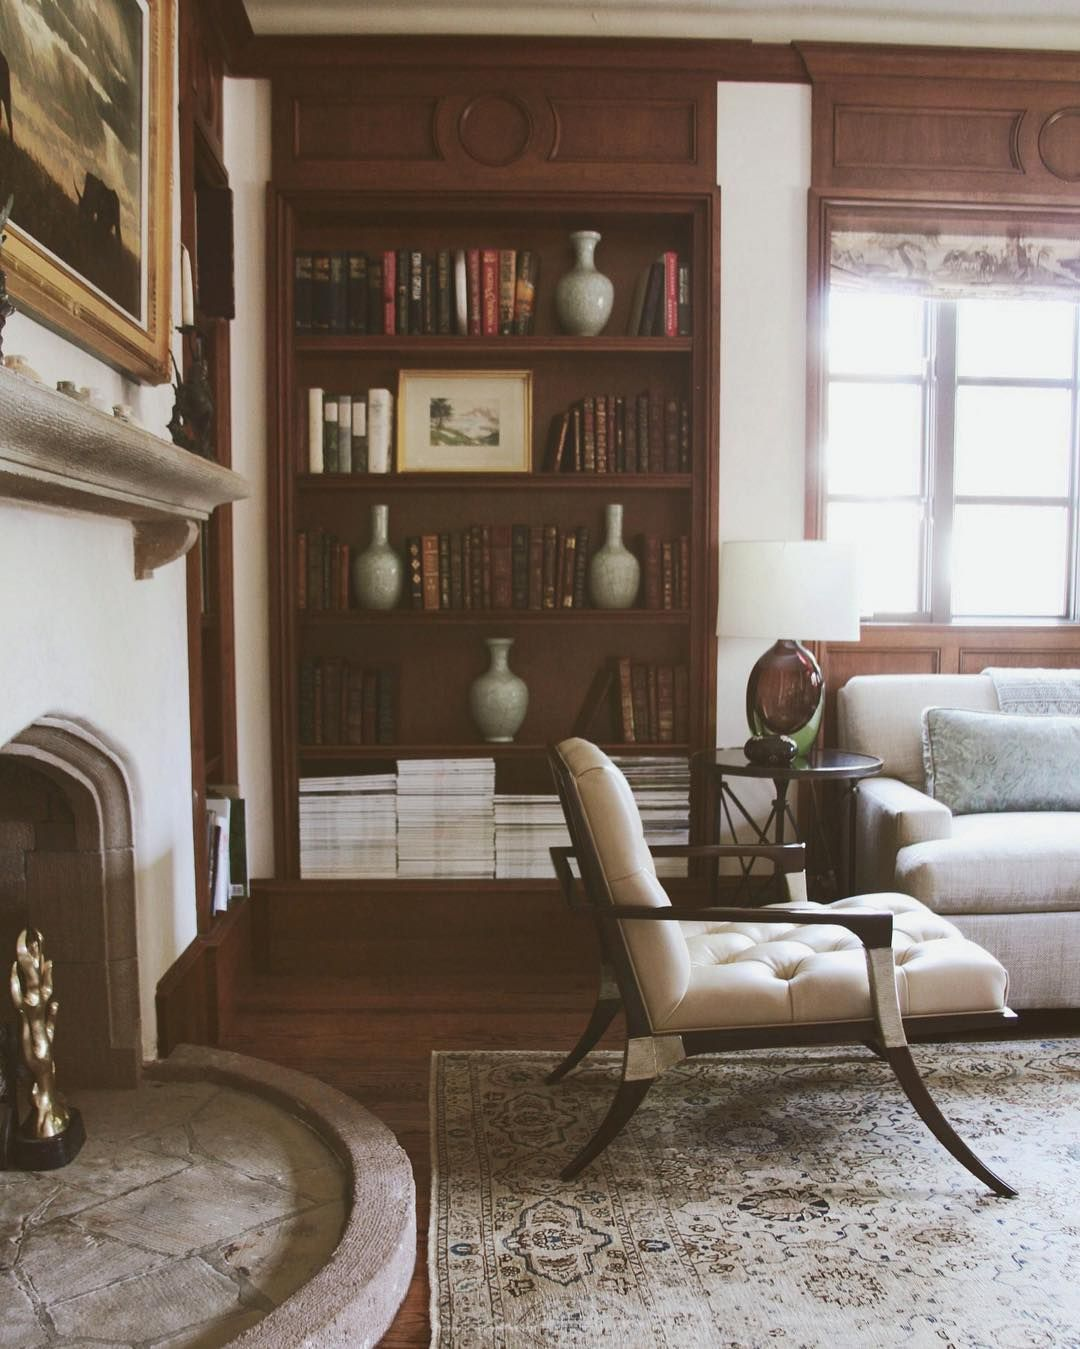 Pin by Mike Taylor on Library Pinterest Interiors and Pillows